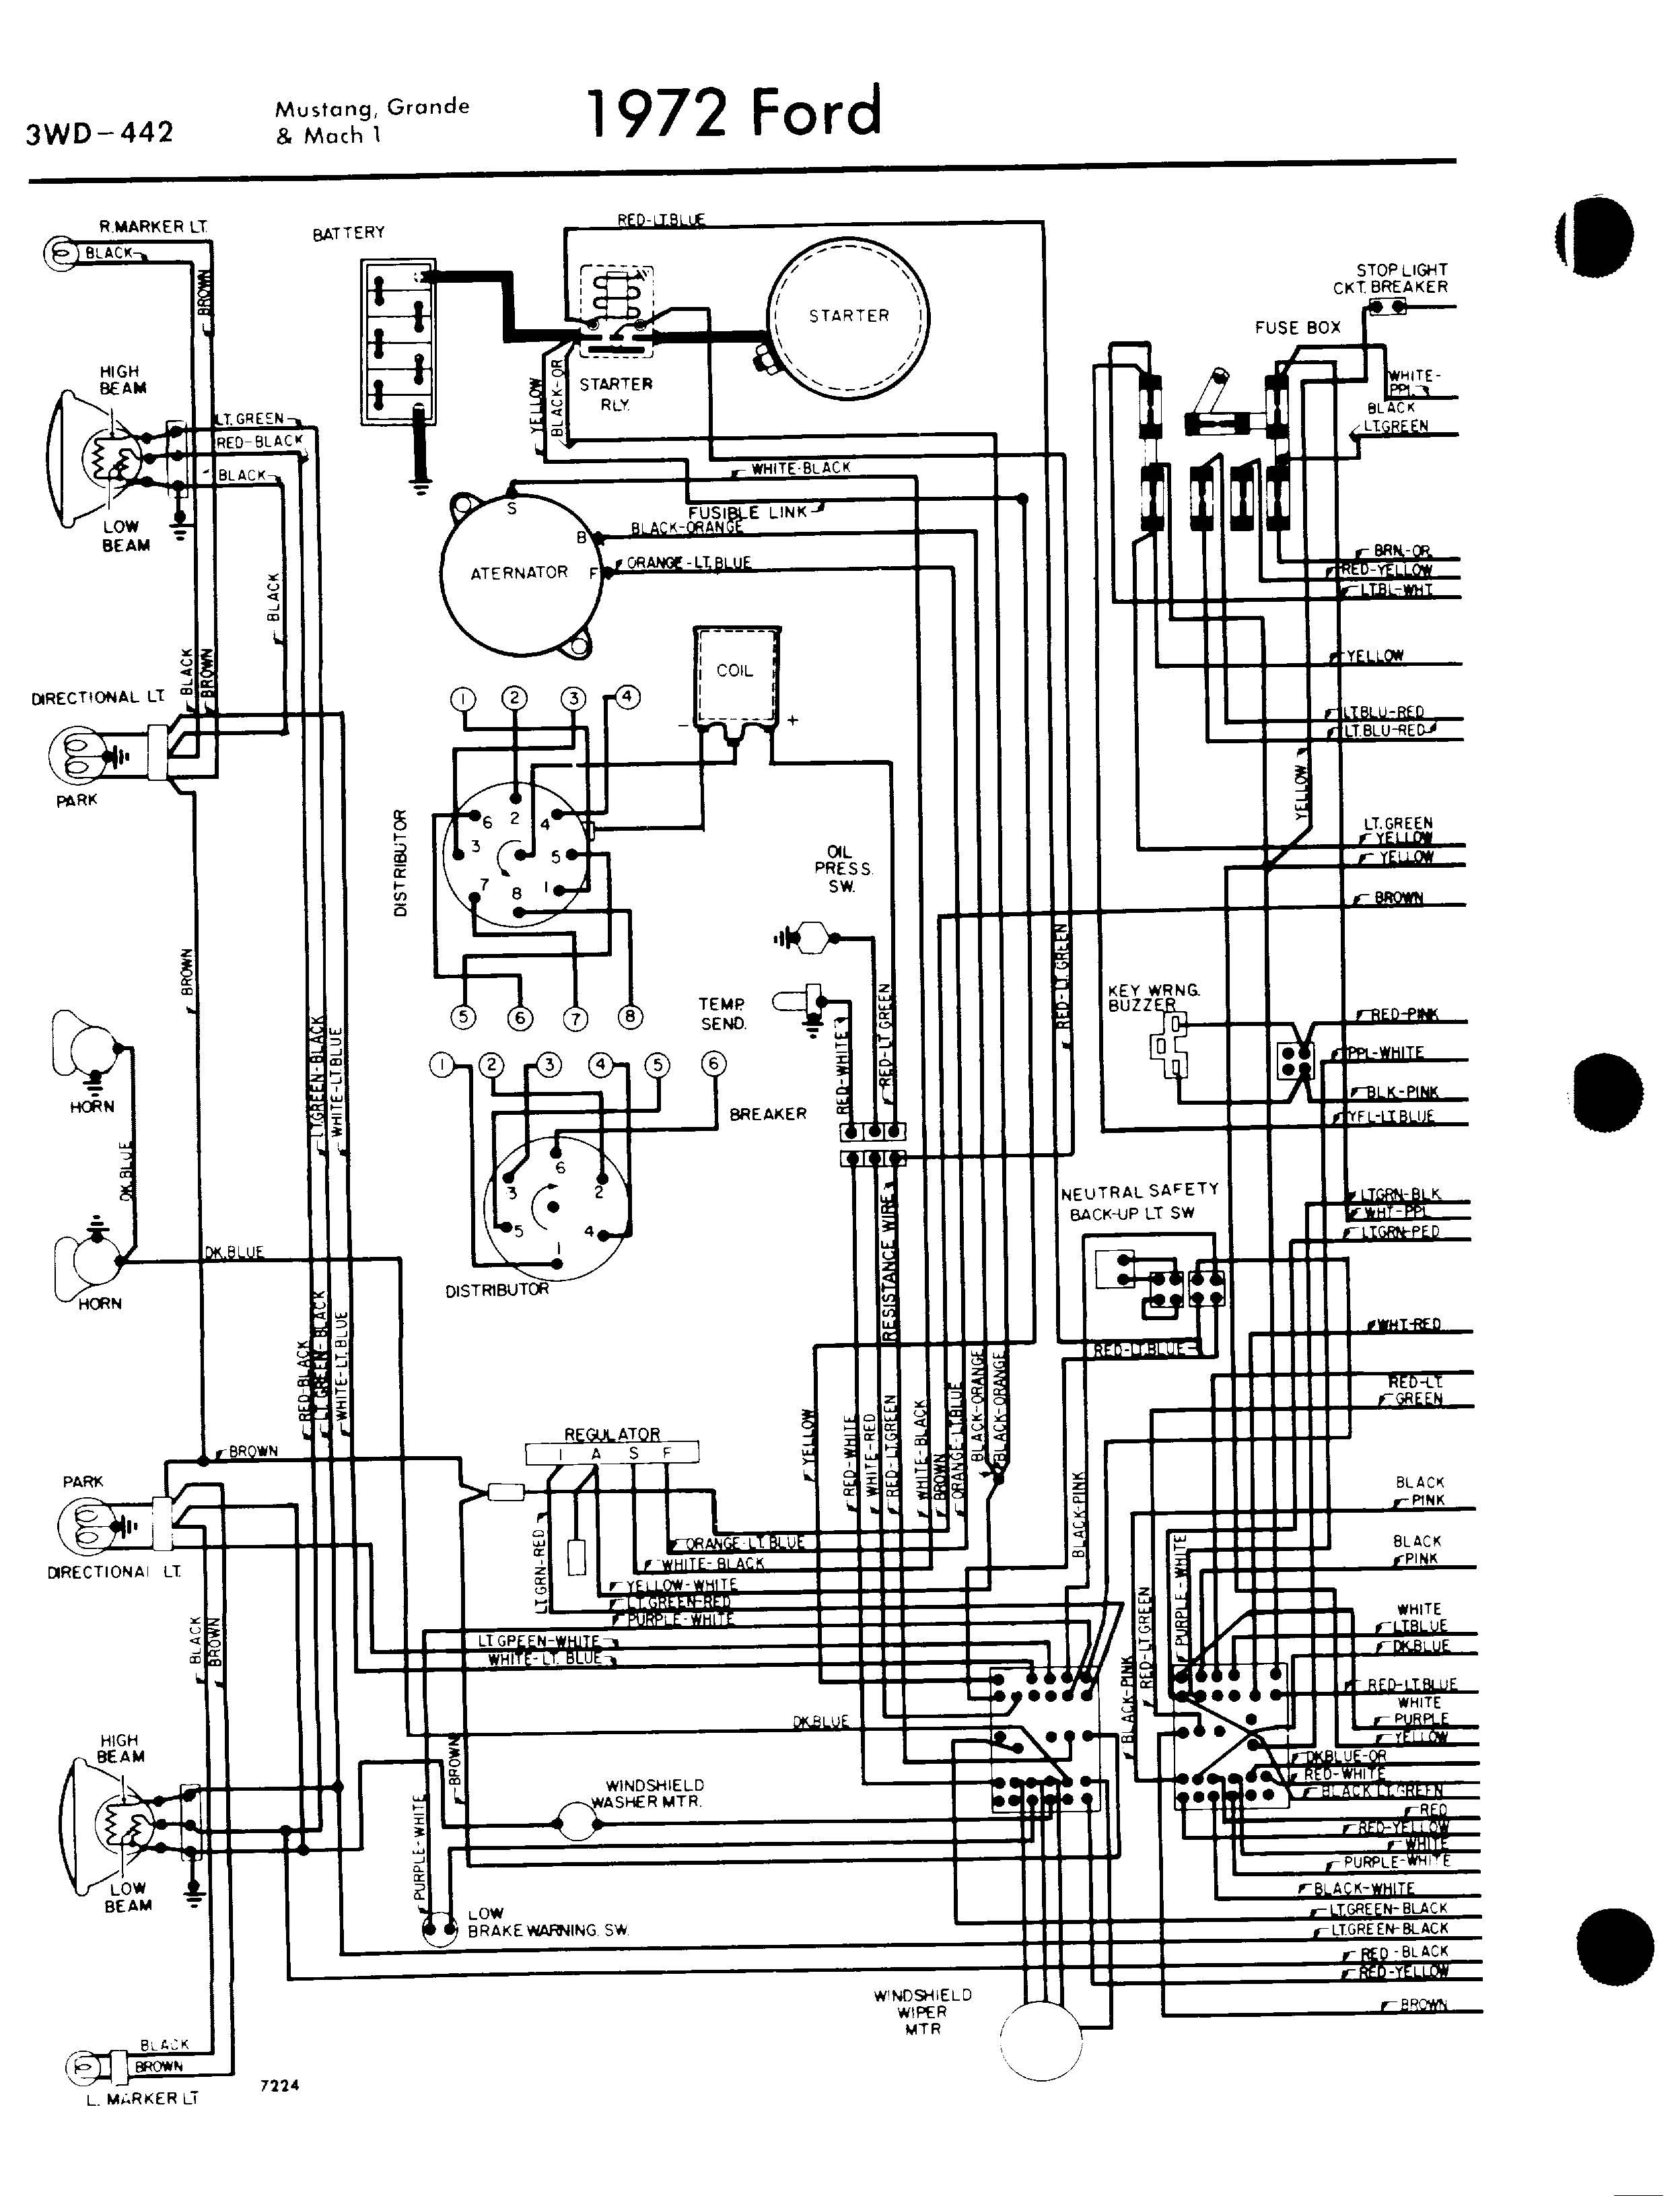 73 Mustang Engine Wiring Wiring Diagram Report A Report A Maceratadoc It